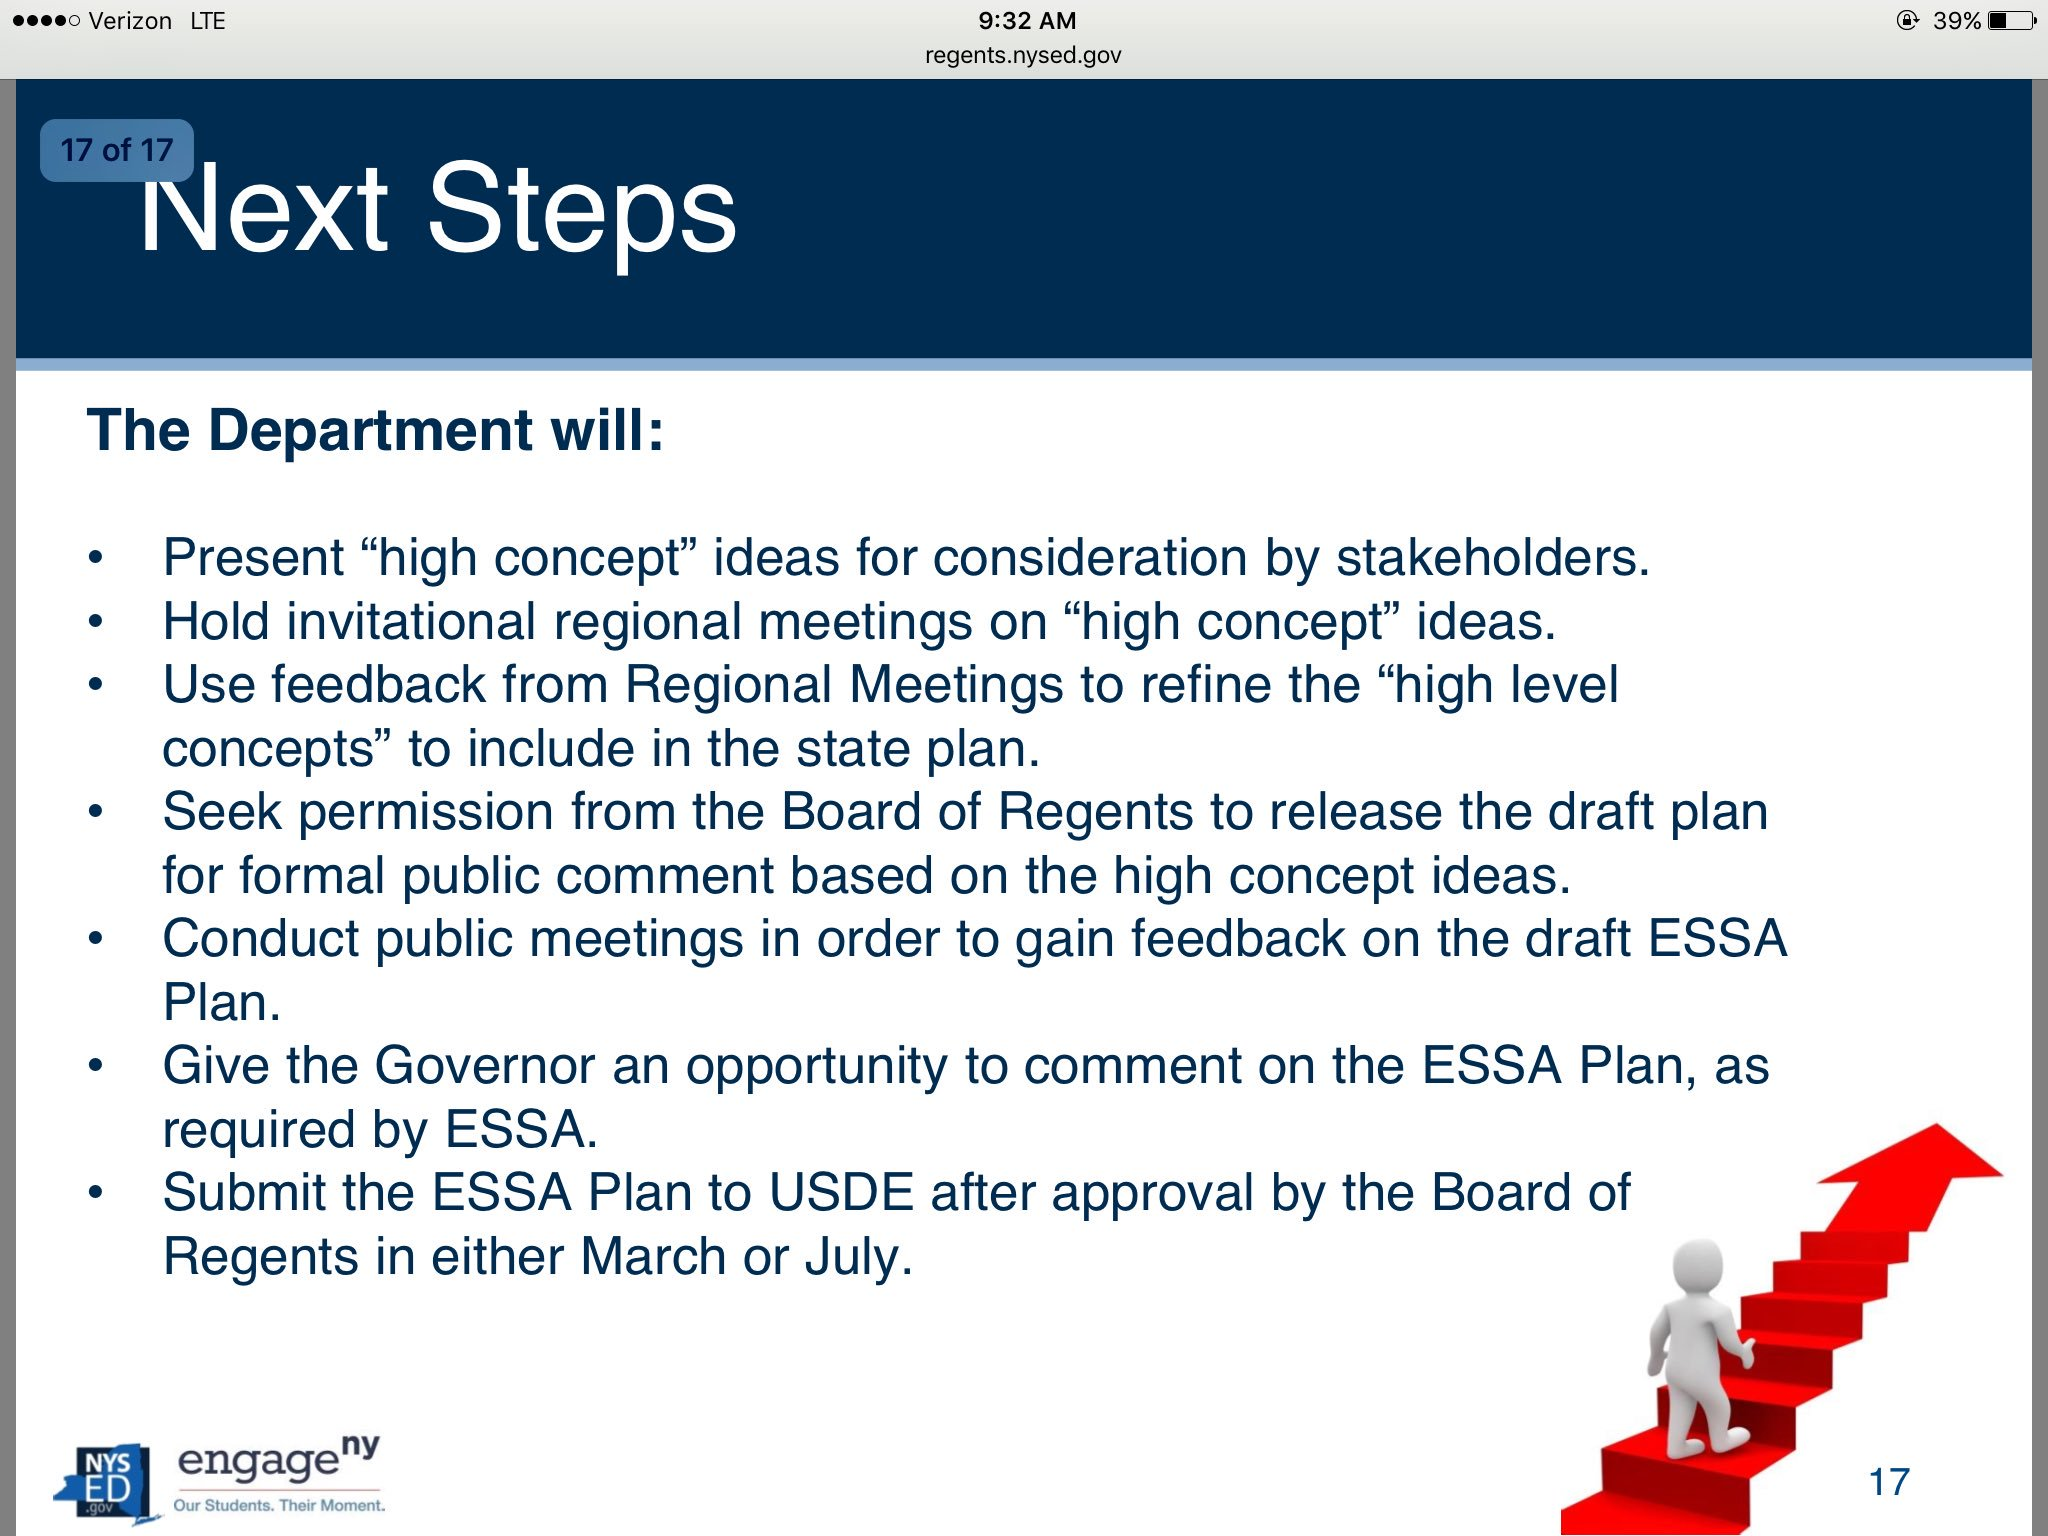 Next steps in ESSA plan development @NYSEDNews @NYSPTA https://t.co/YFONosobJf